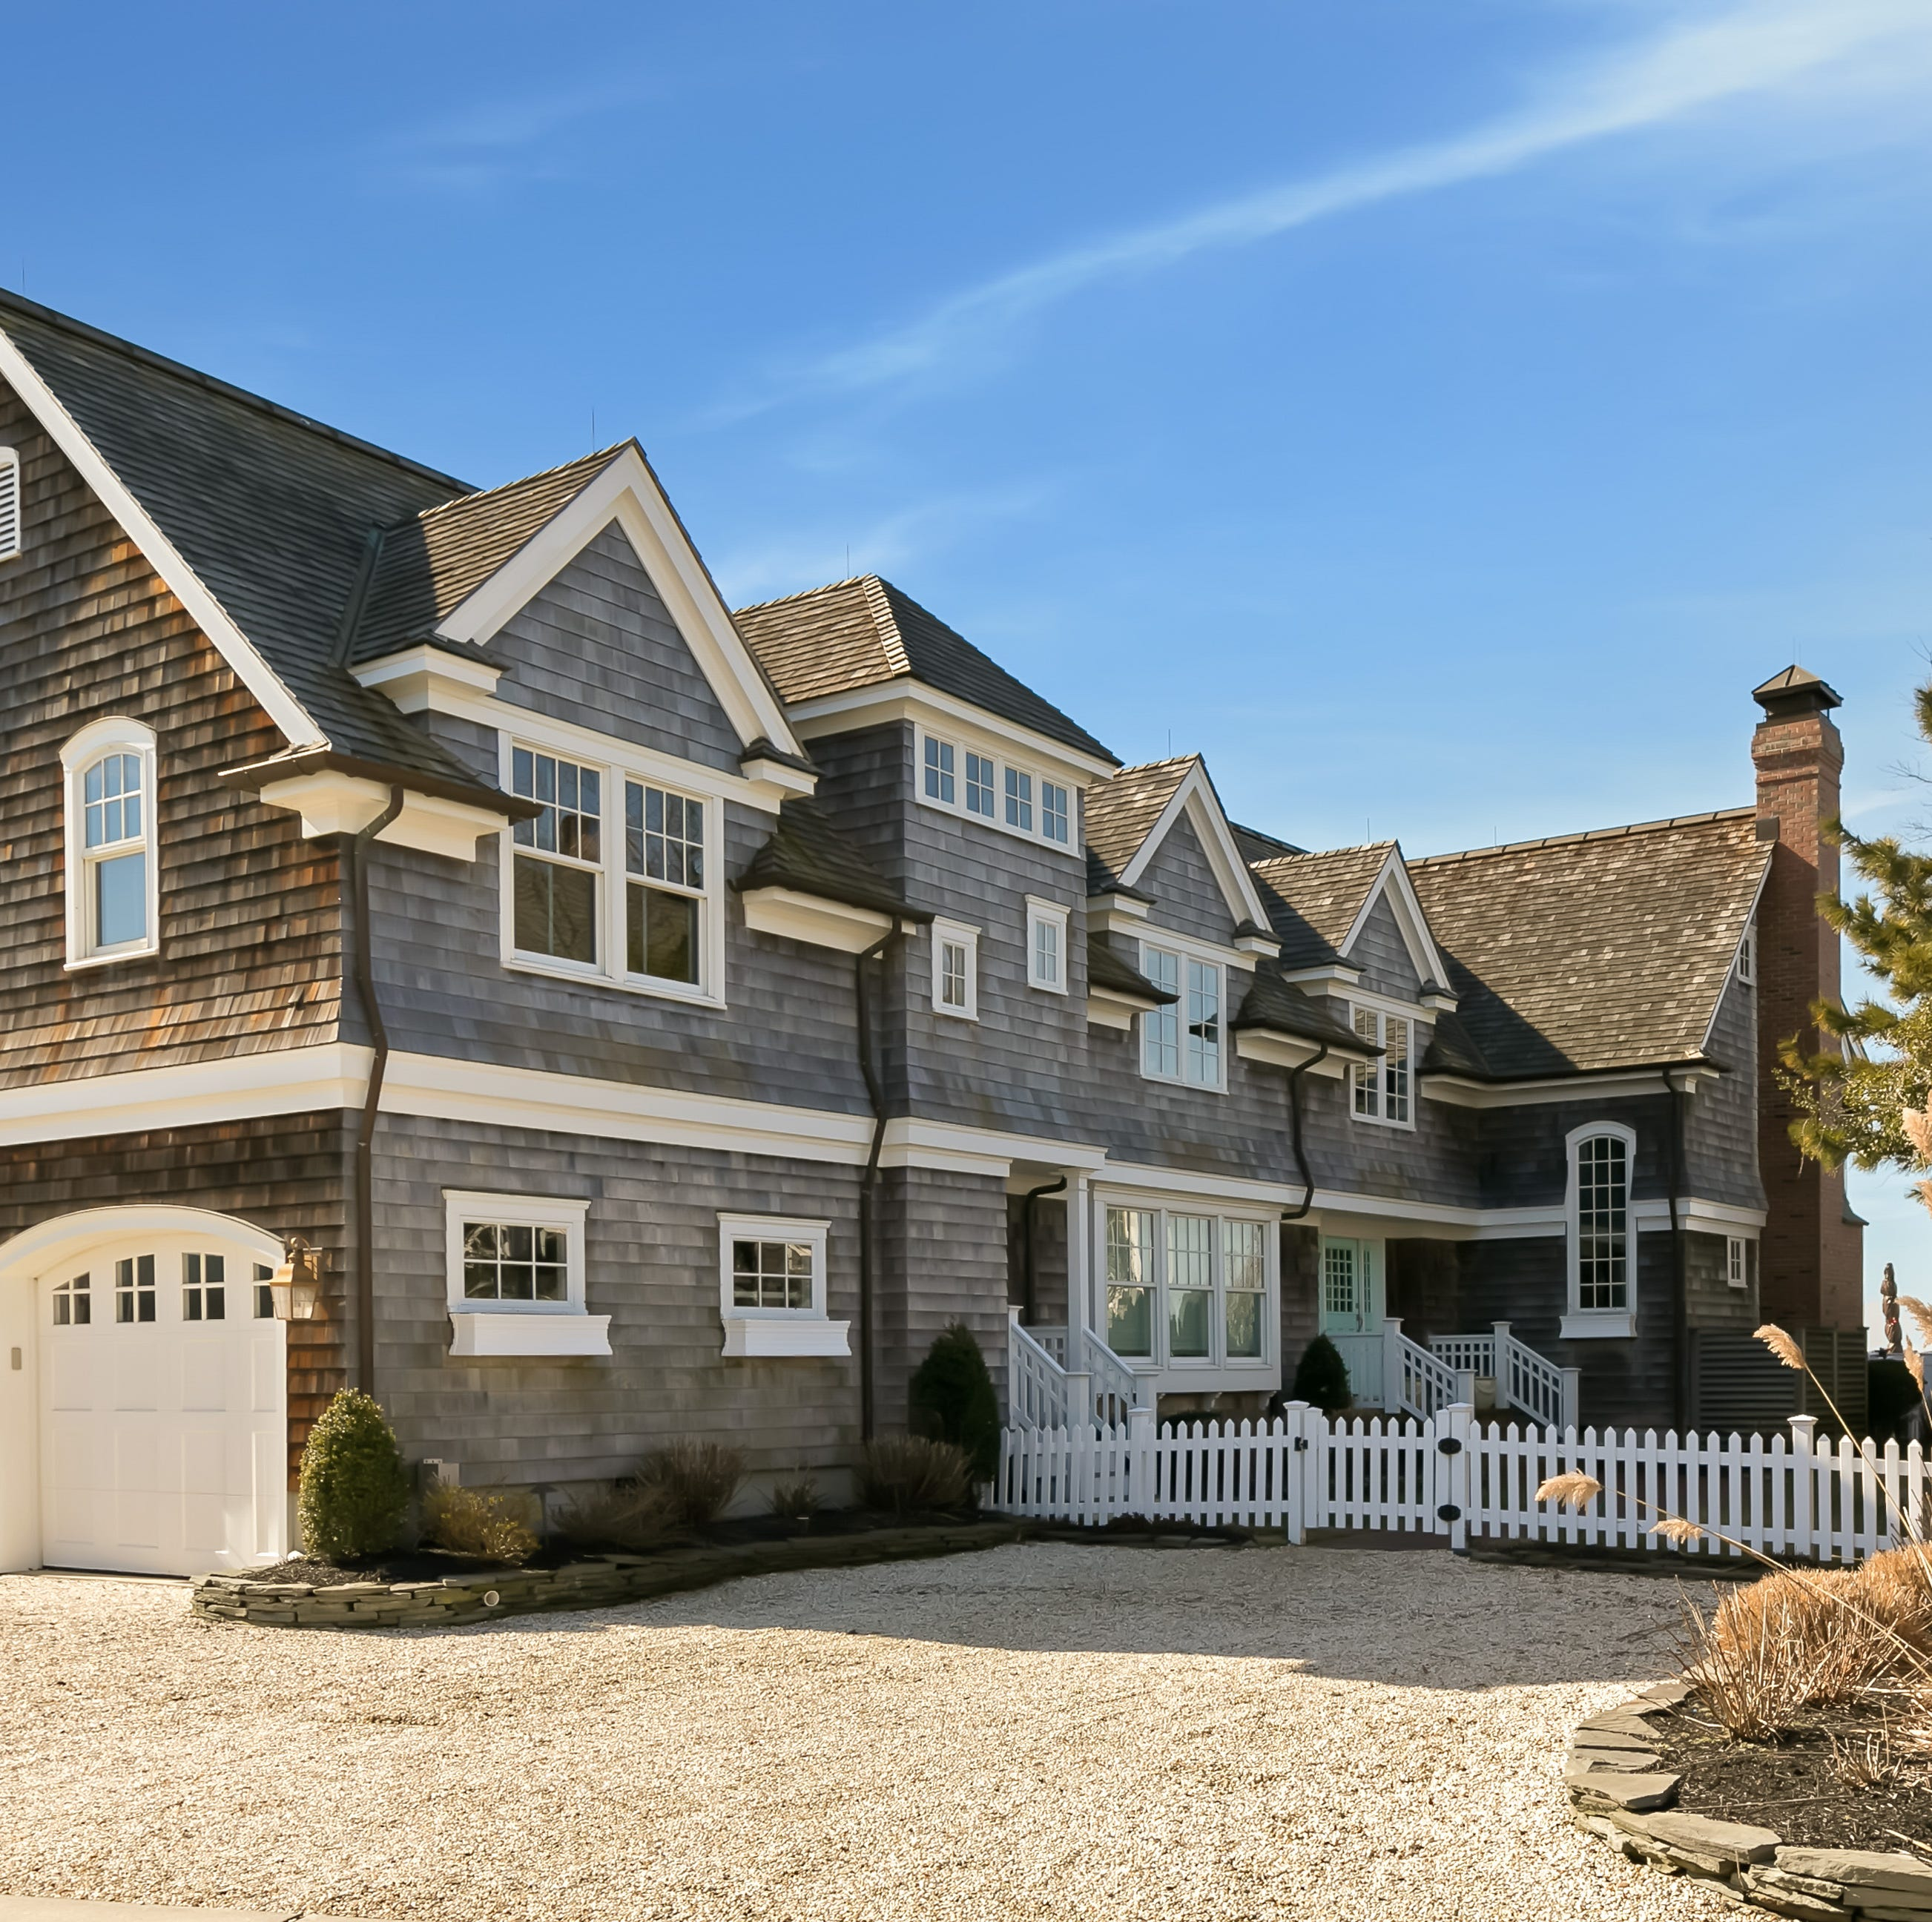 NJ homes: This Mantoloking pristine bayfront historic home charms at $3.5 million